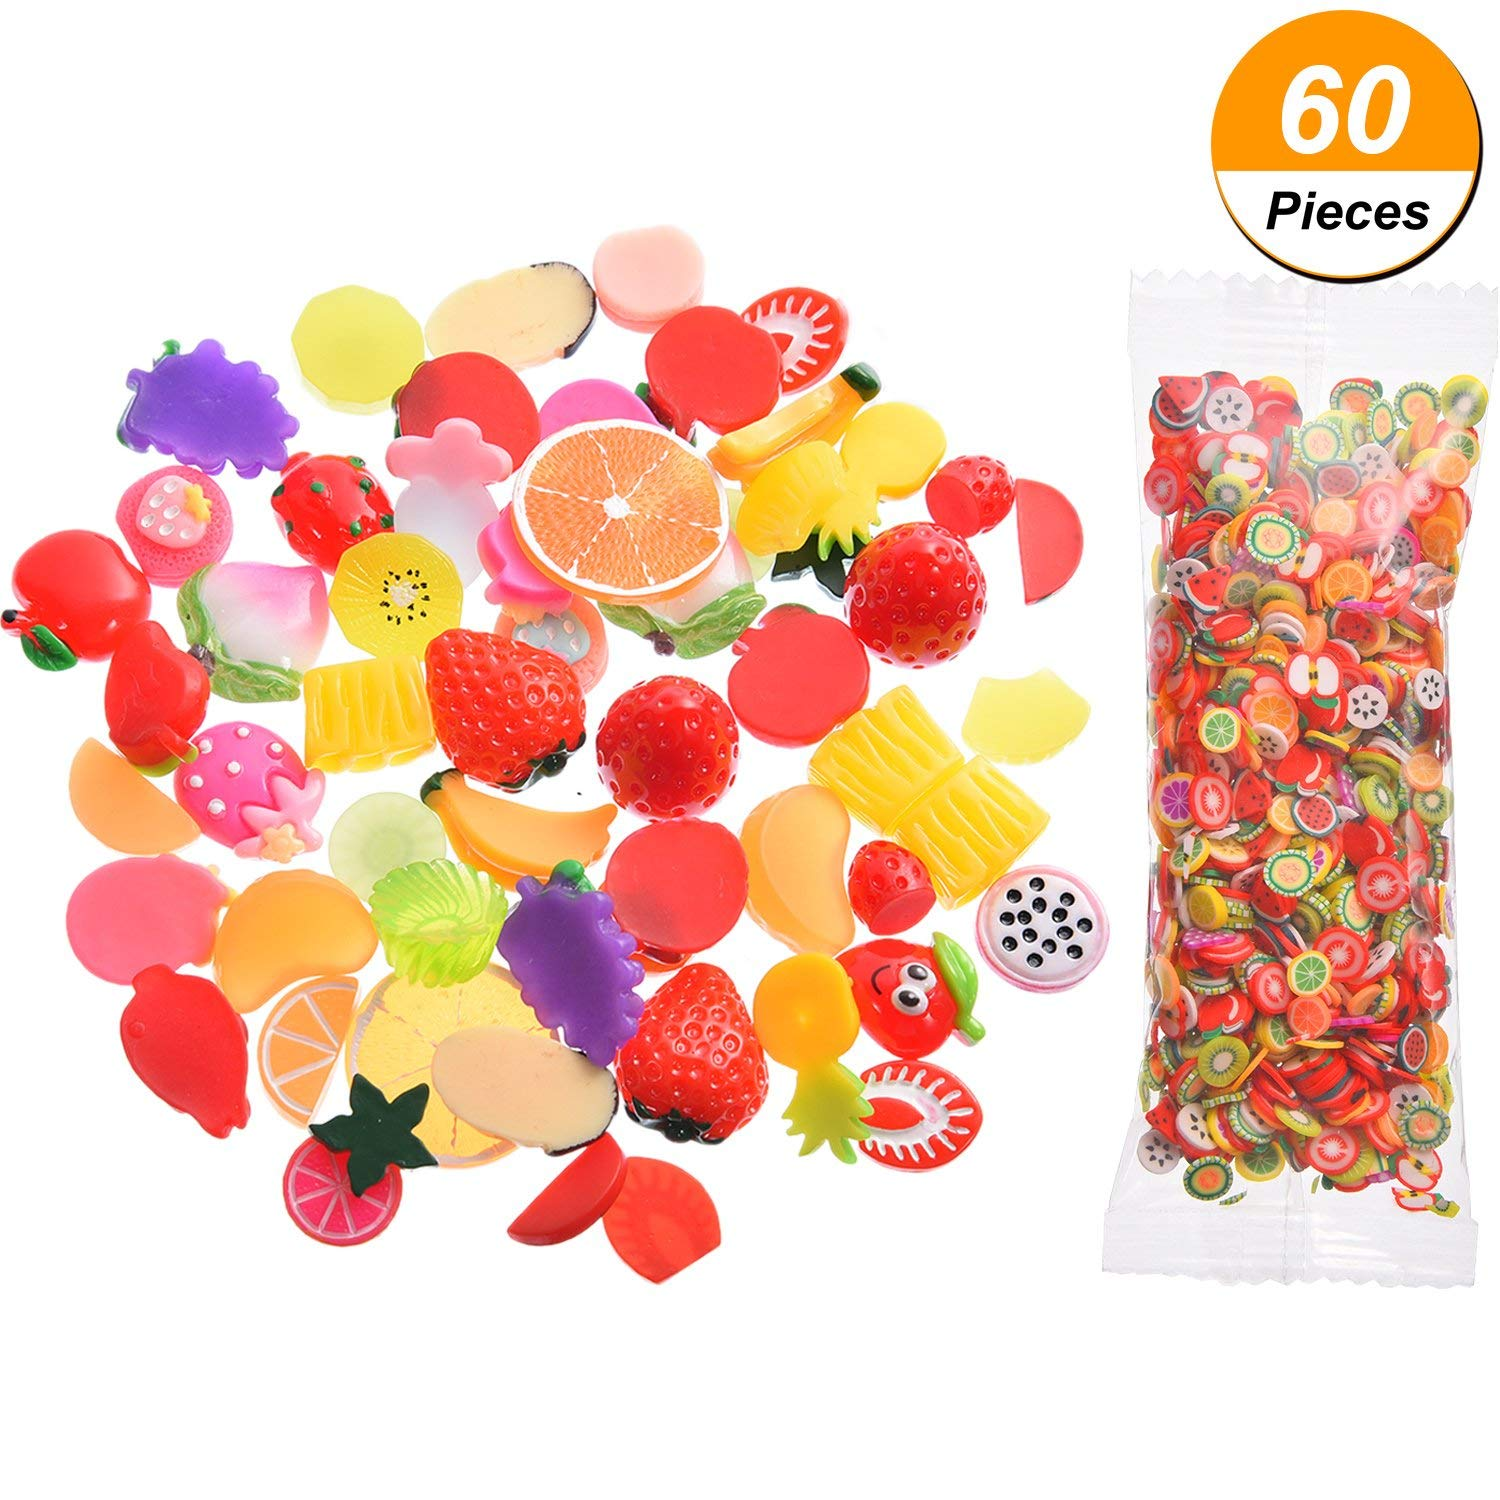 Bememo 60 Pieces Assorted Fruits Slime Charms Fruit Slime Beads Set with 1000 Pieces Fruit Slices for DIY Crafts